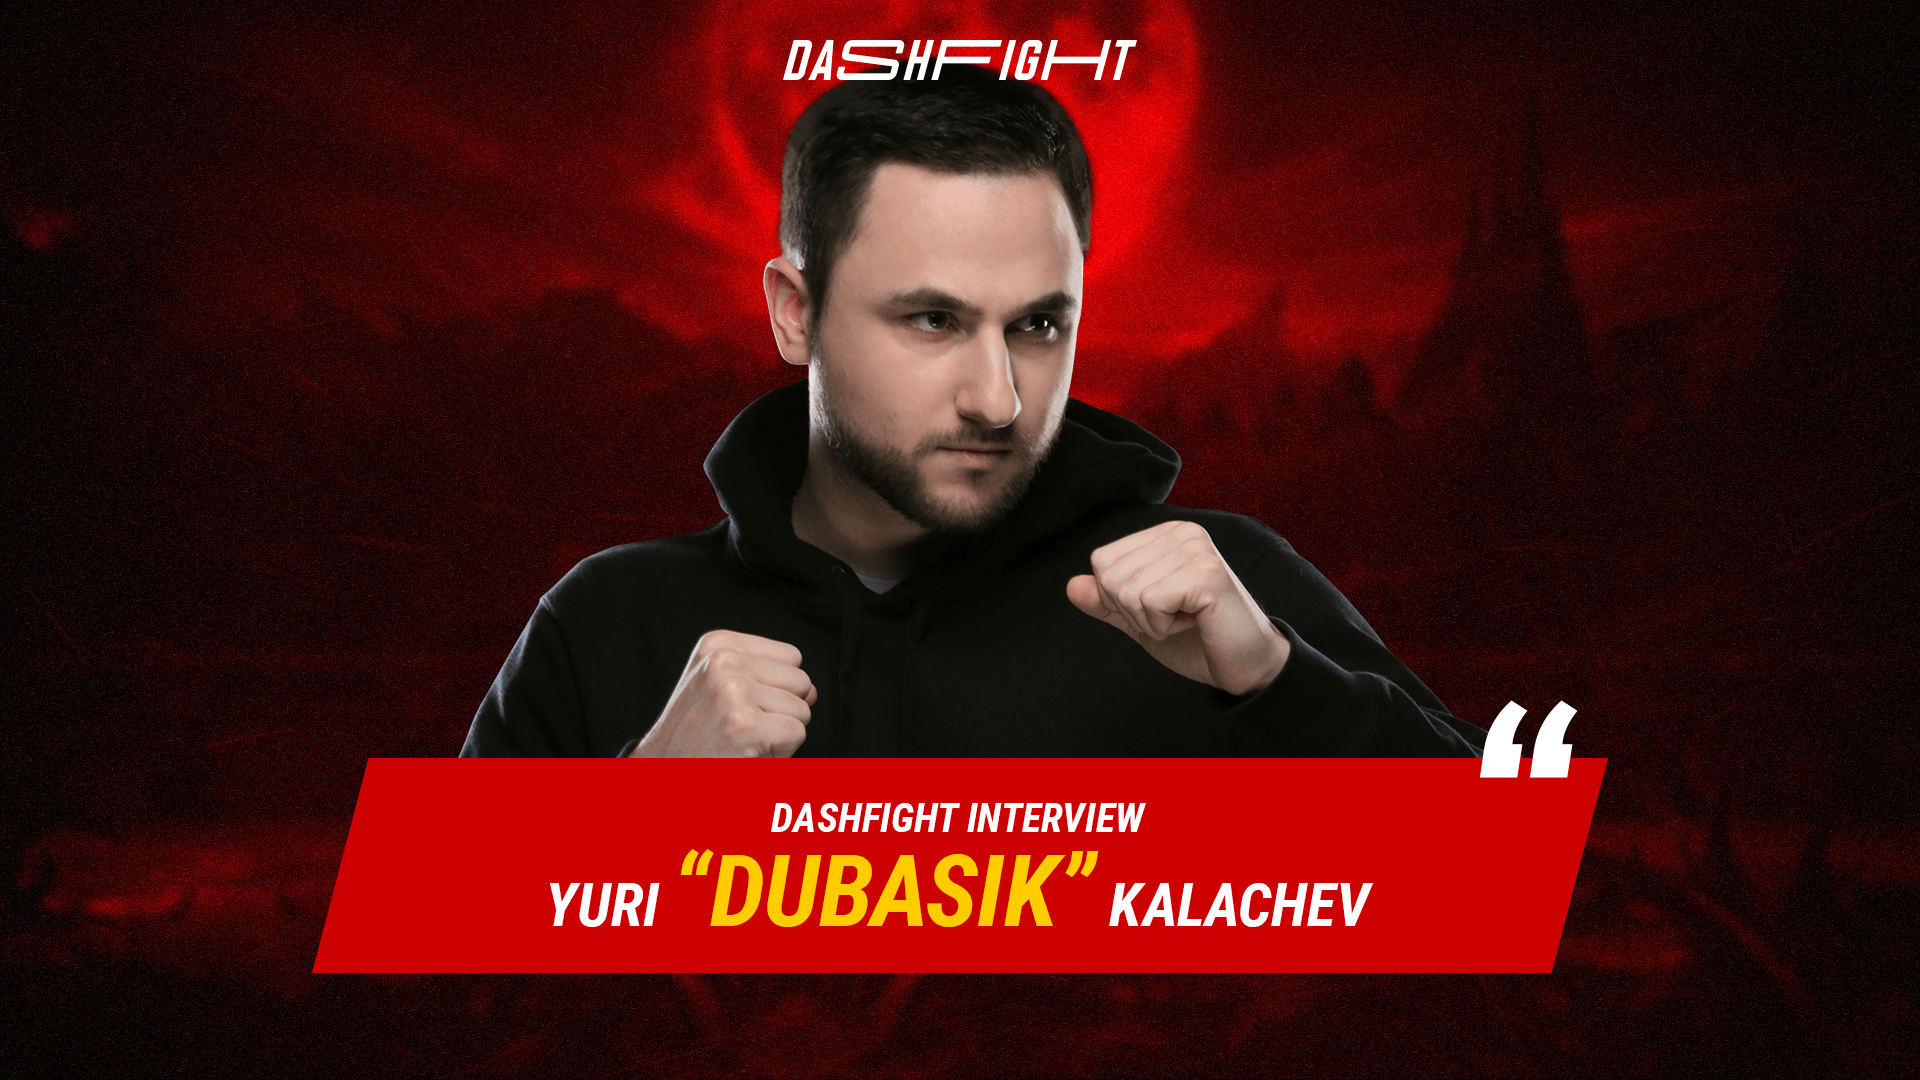 INTERVIEW WITH DUBASIK